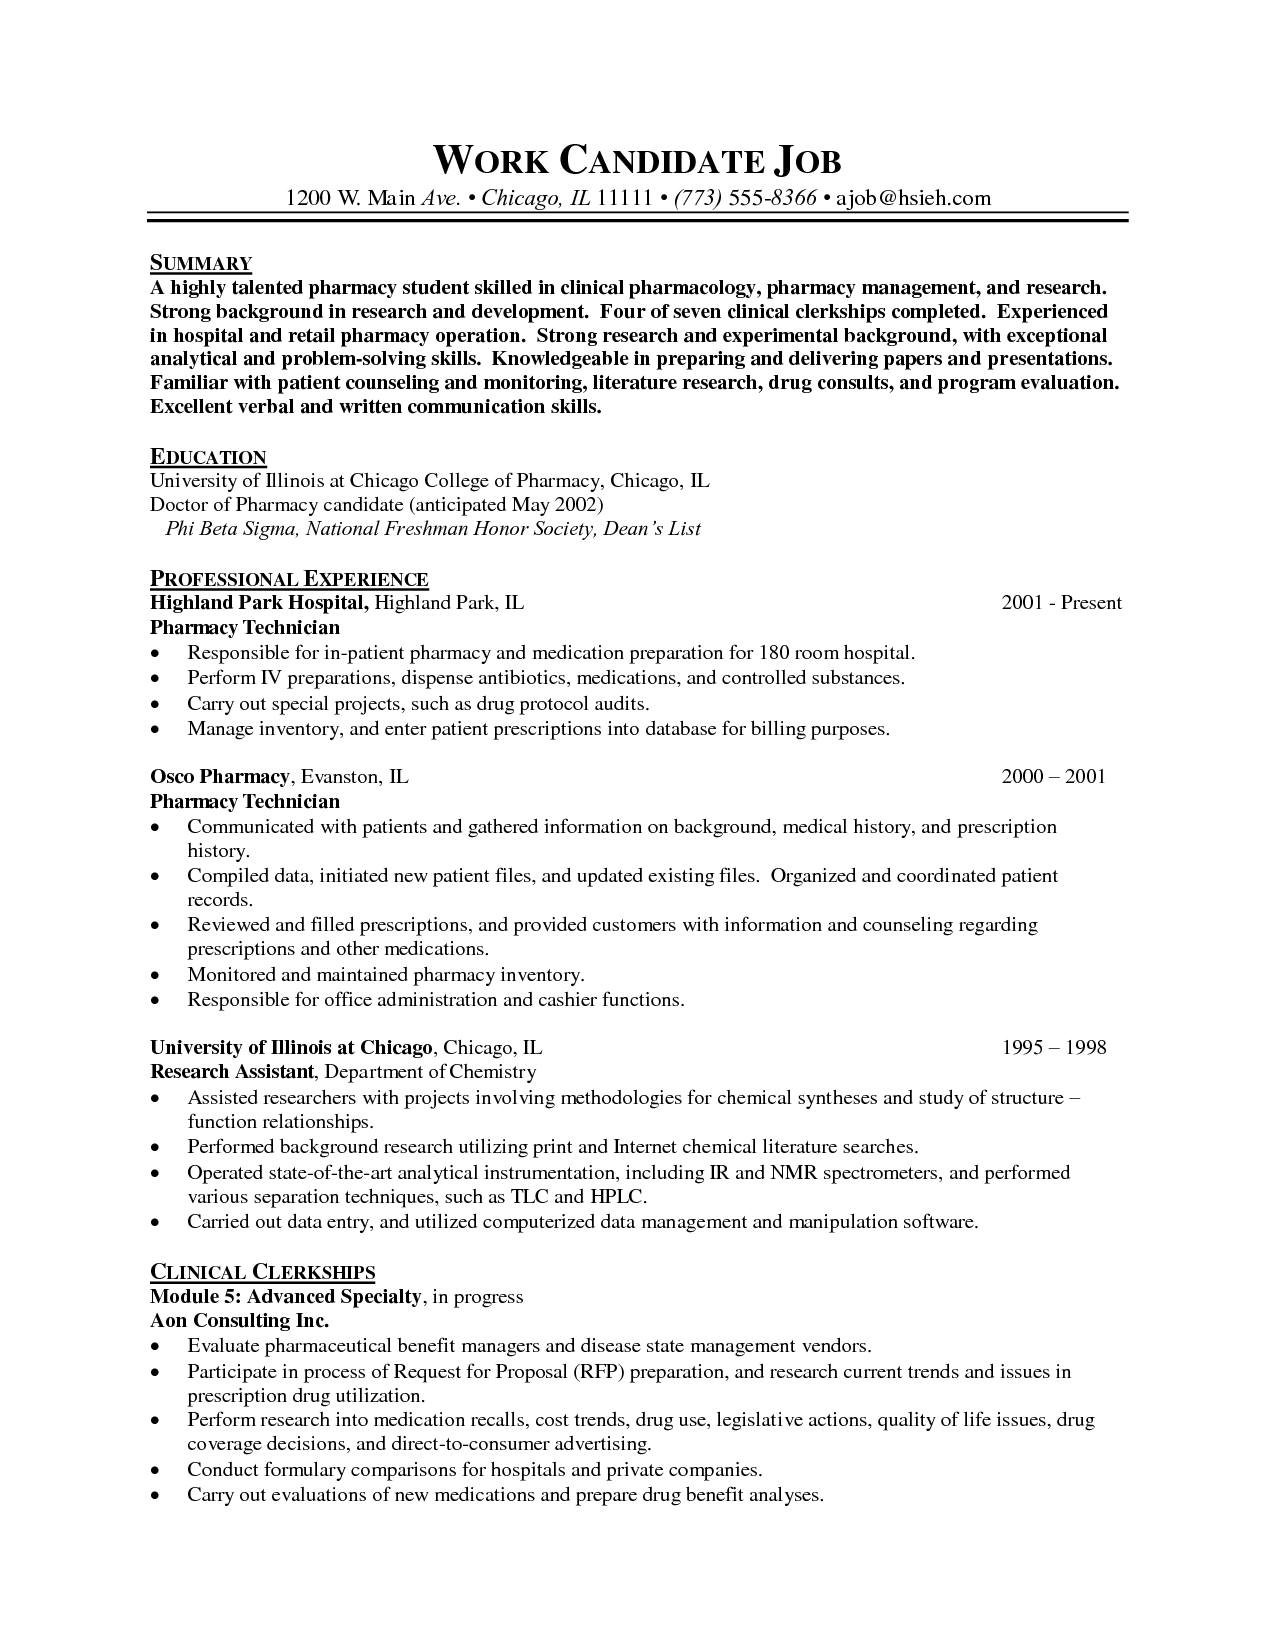 best images about resume templets self defense 17 best images about resume templets self defense products resume format for pharmacy - Resume Format For Pharmacy Freshers